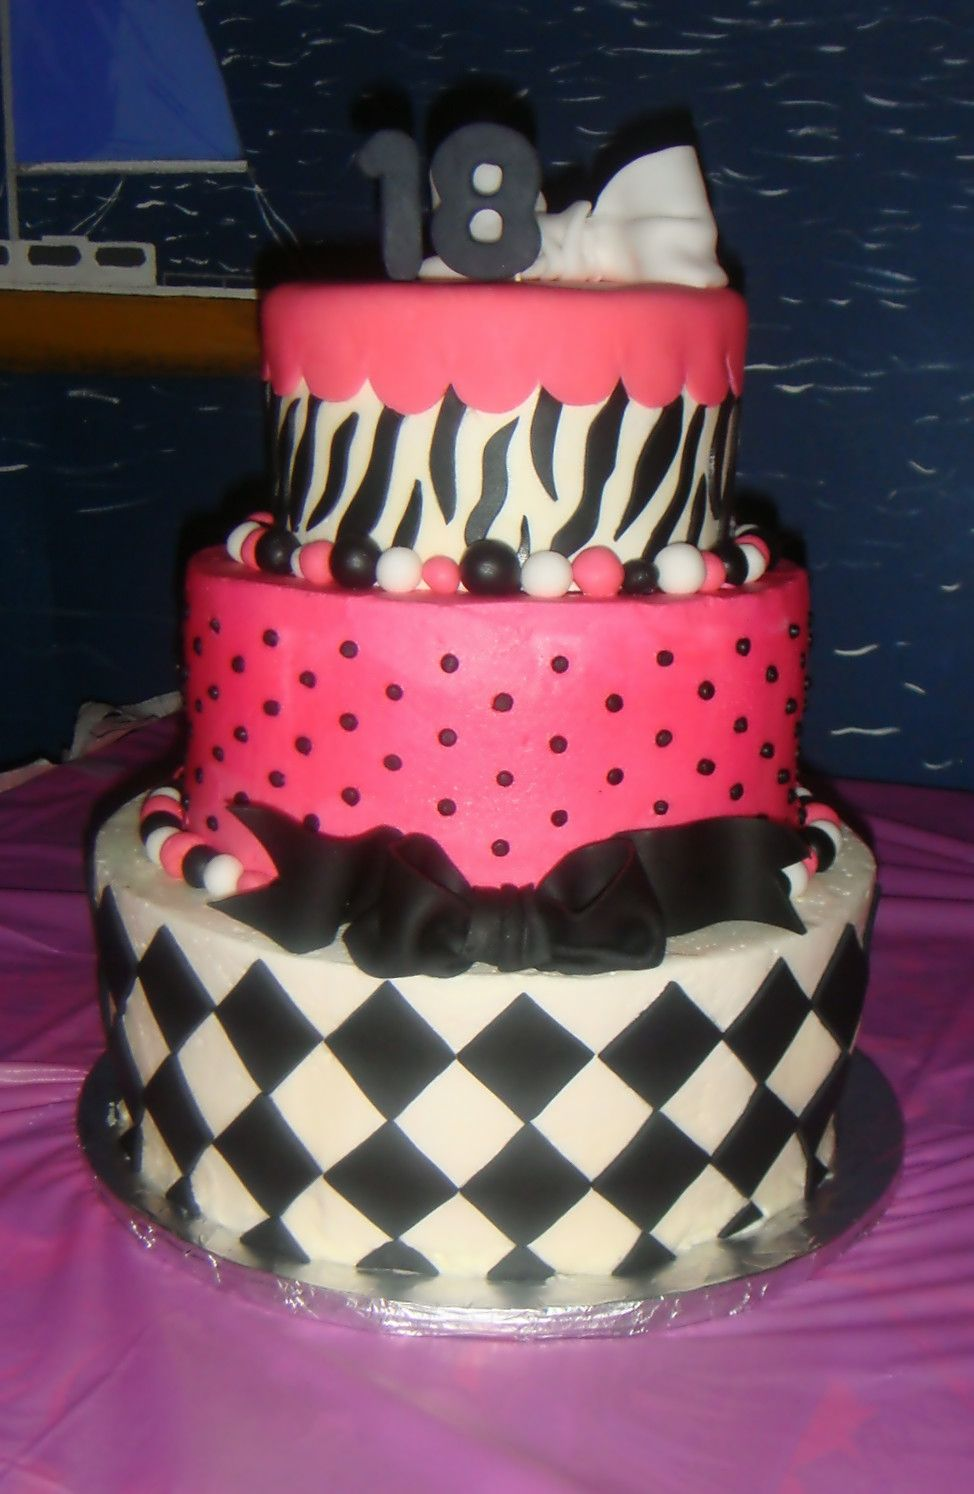 18th Birthday Cake Designs For Boys More At Recipins Cute